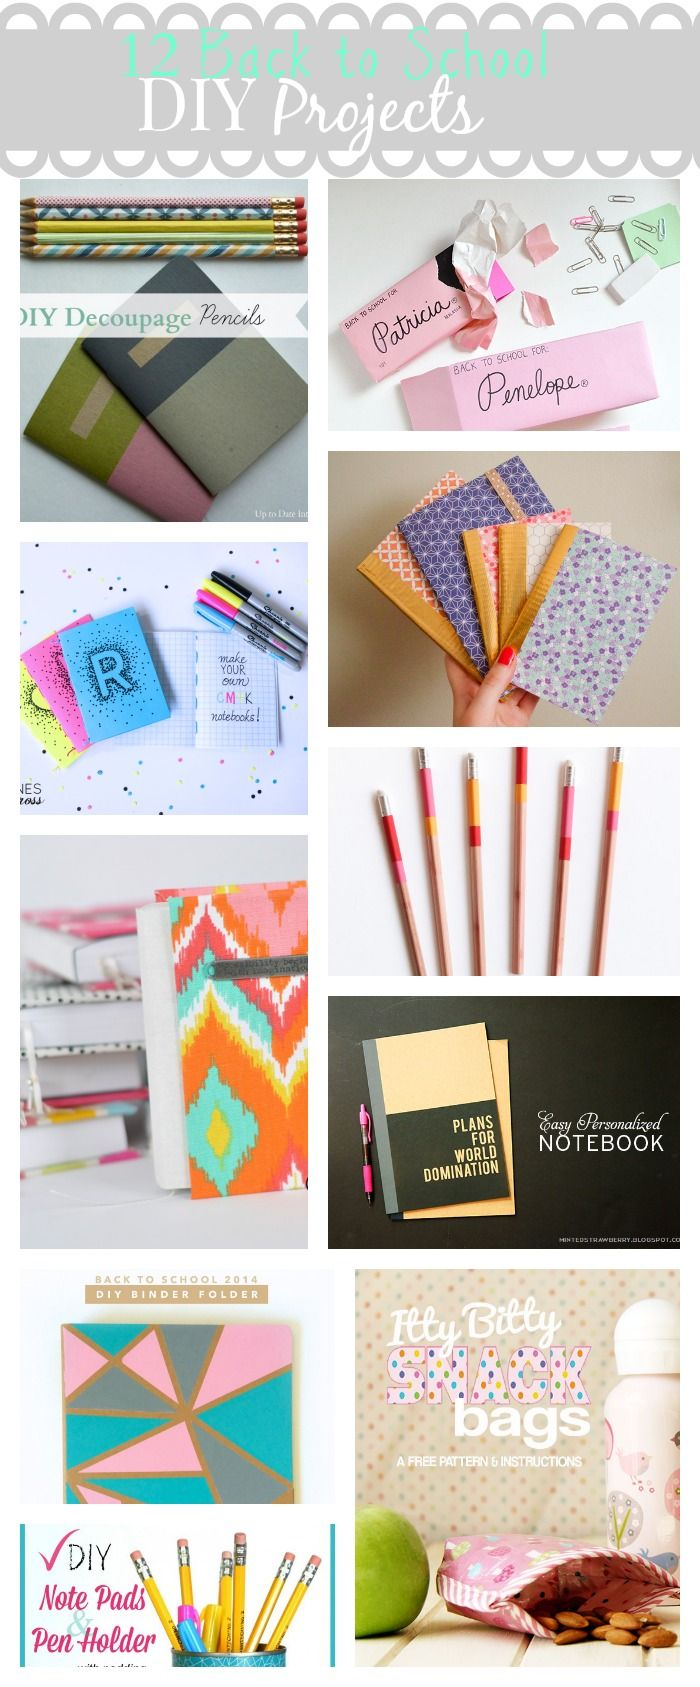 10 back to school diy projects!